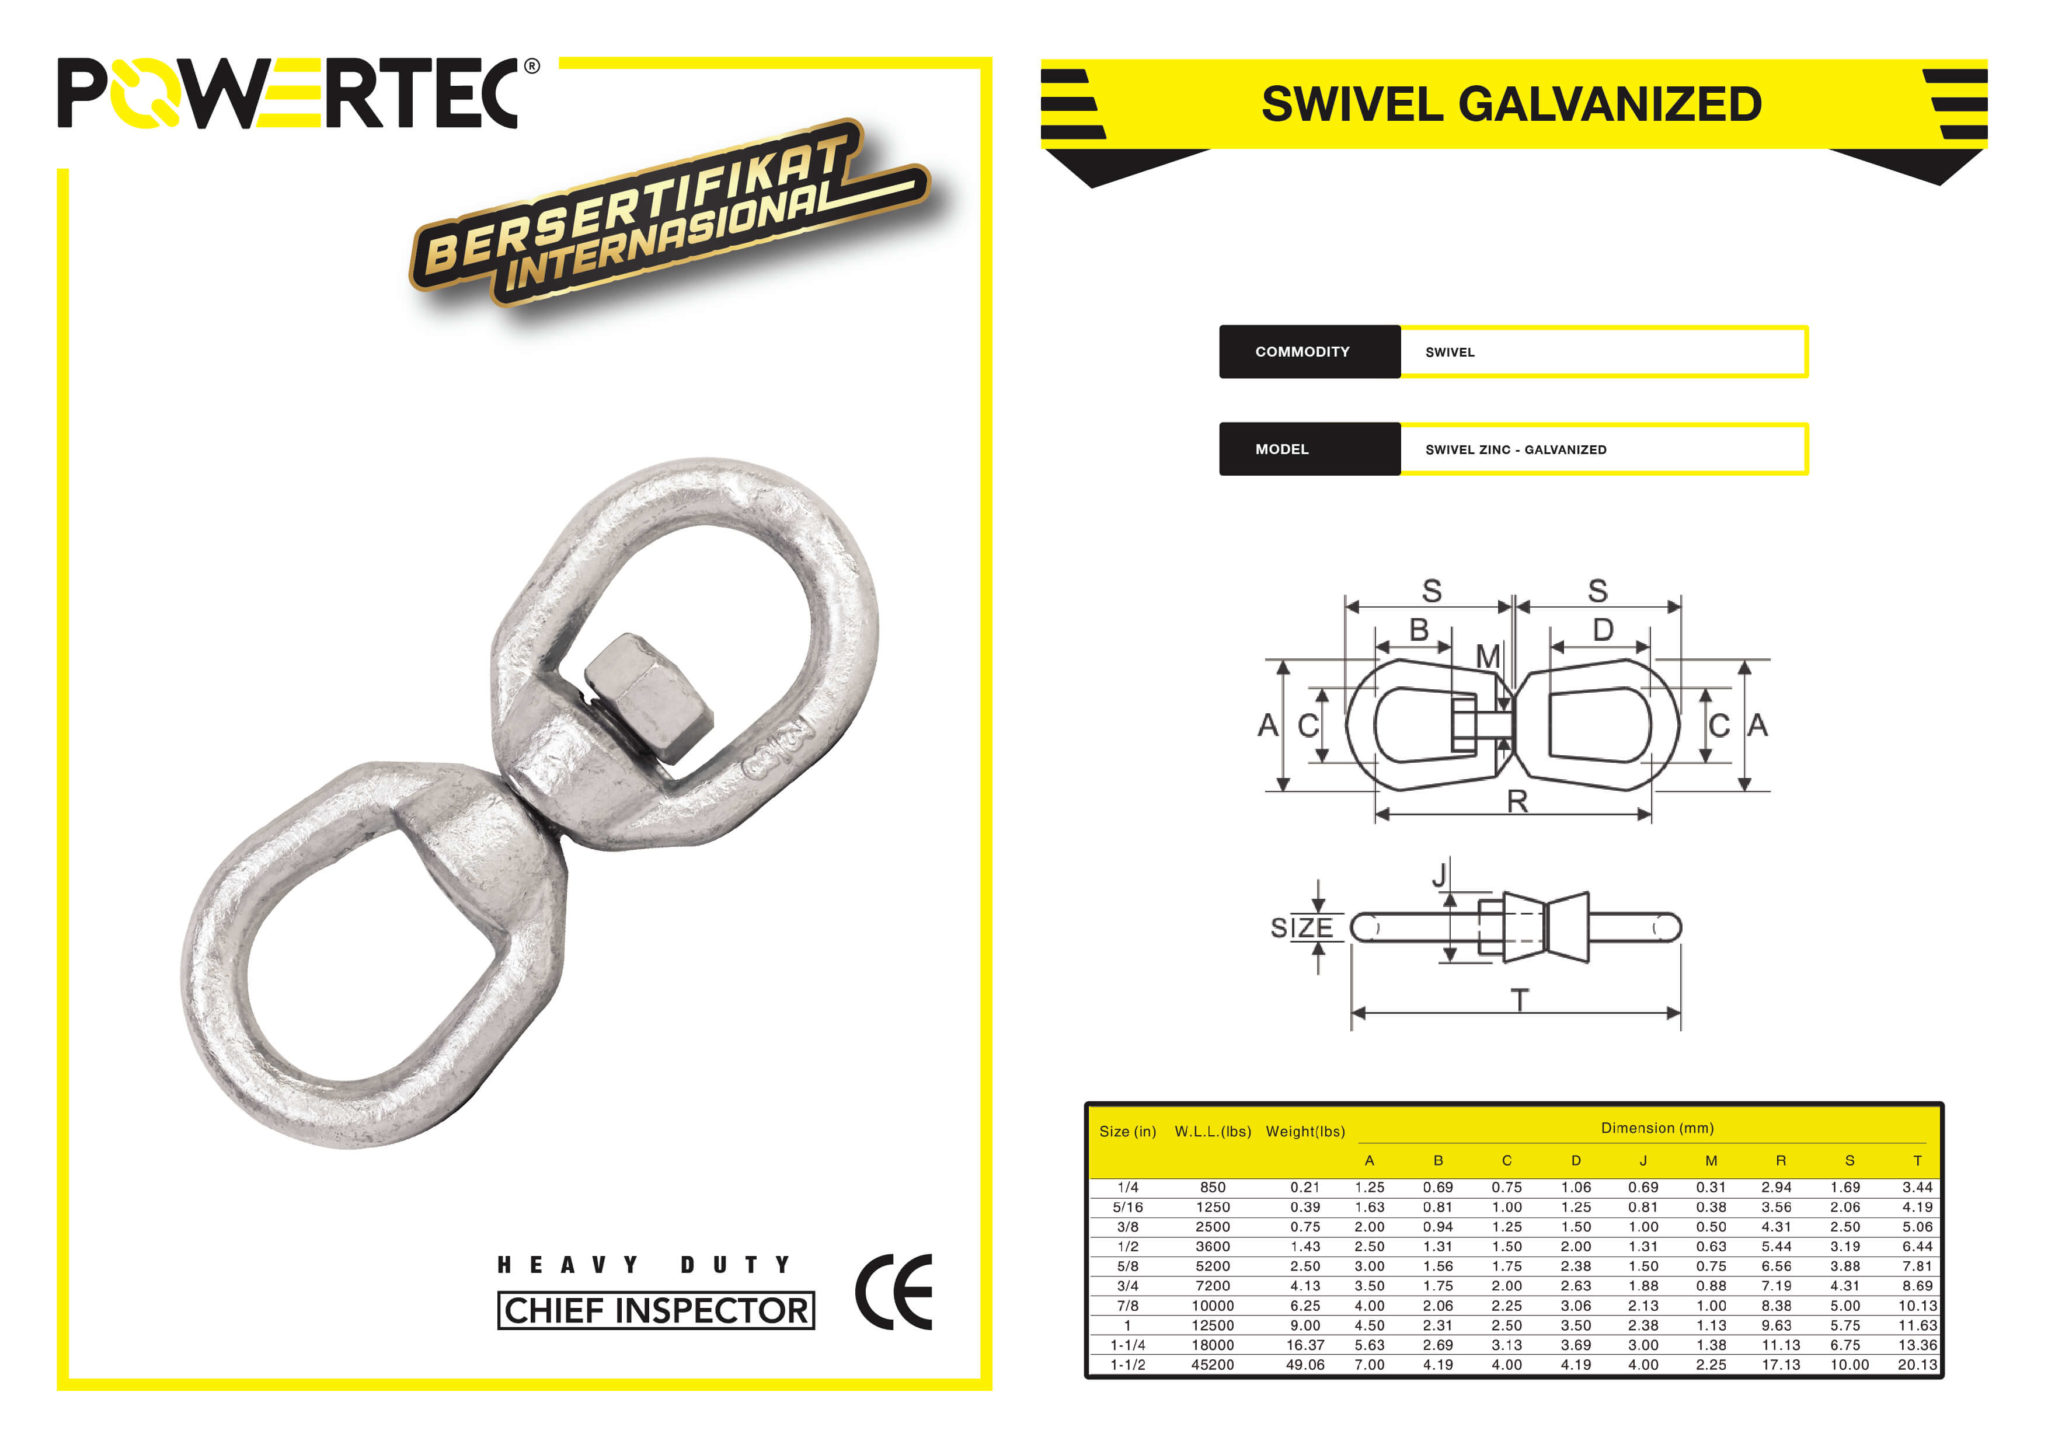 POWERTEC SWIVEL GALVANIZED BROCHURE